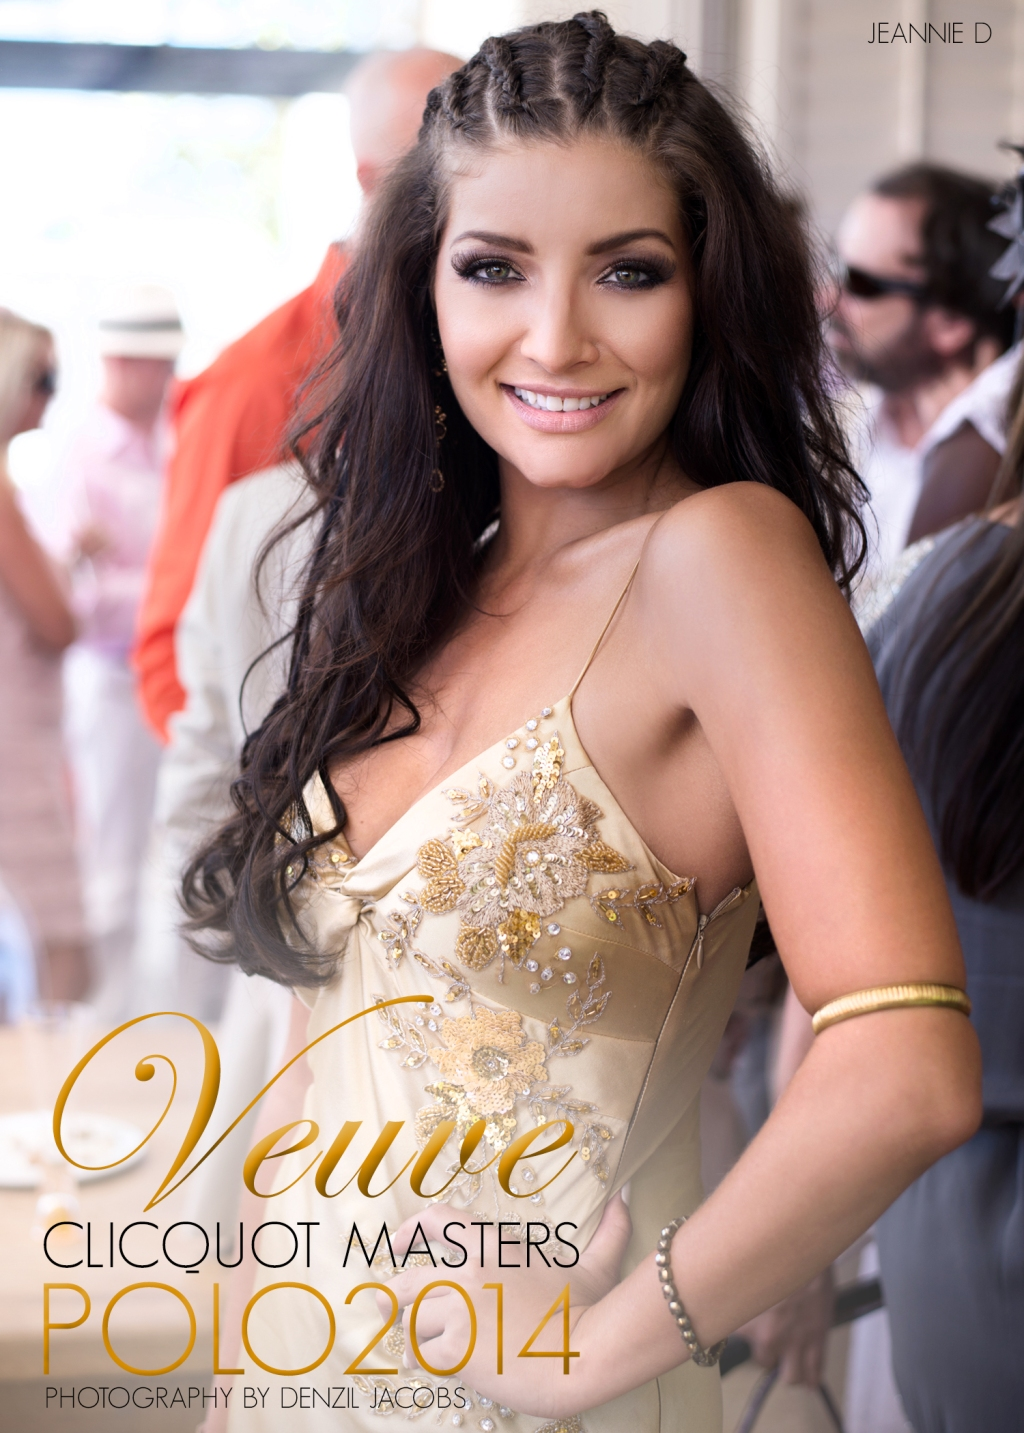 02.26 Veuve Clicquot Masters Polo 2014, Jeannie D (by Denzil Jacobs)